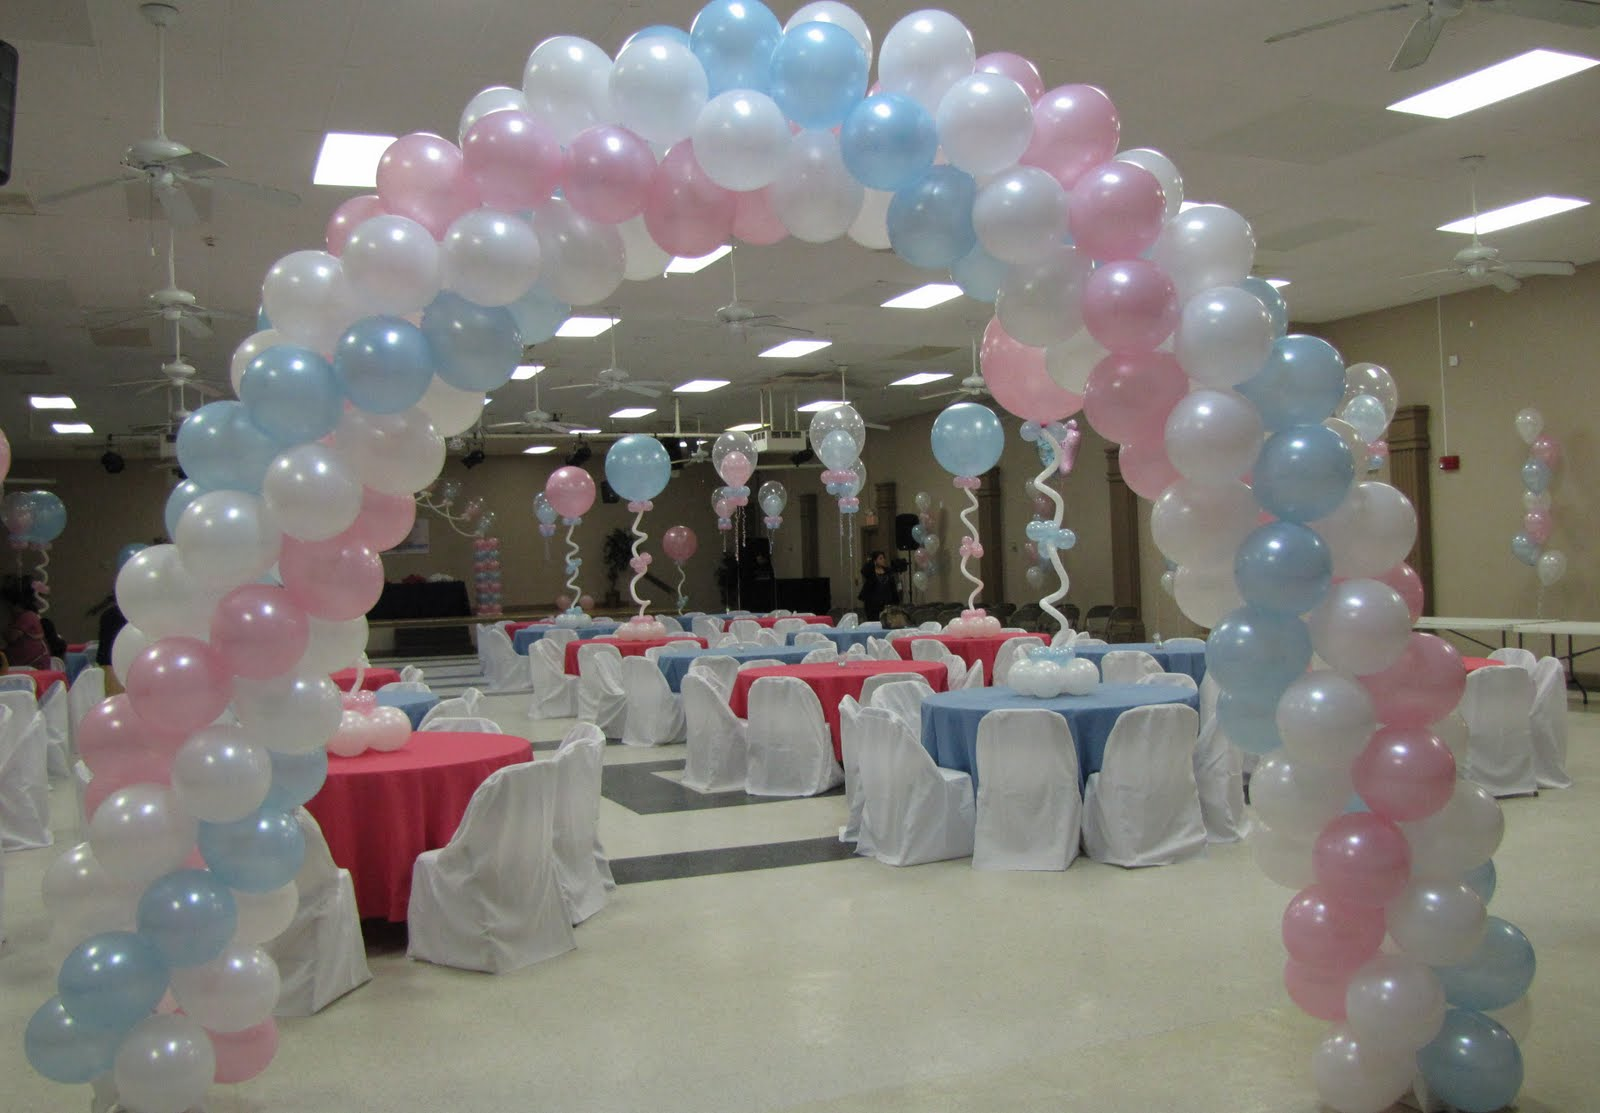 balloons decorations for baby shower party favors ideas ForBaby Showers Decoration